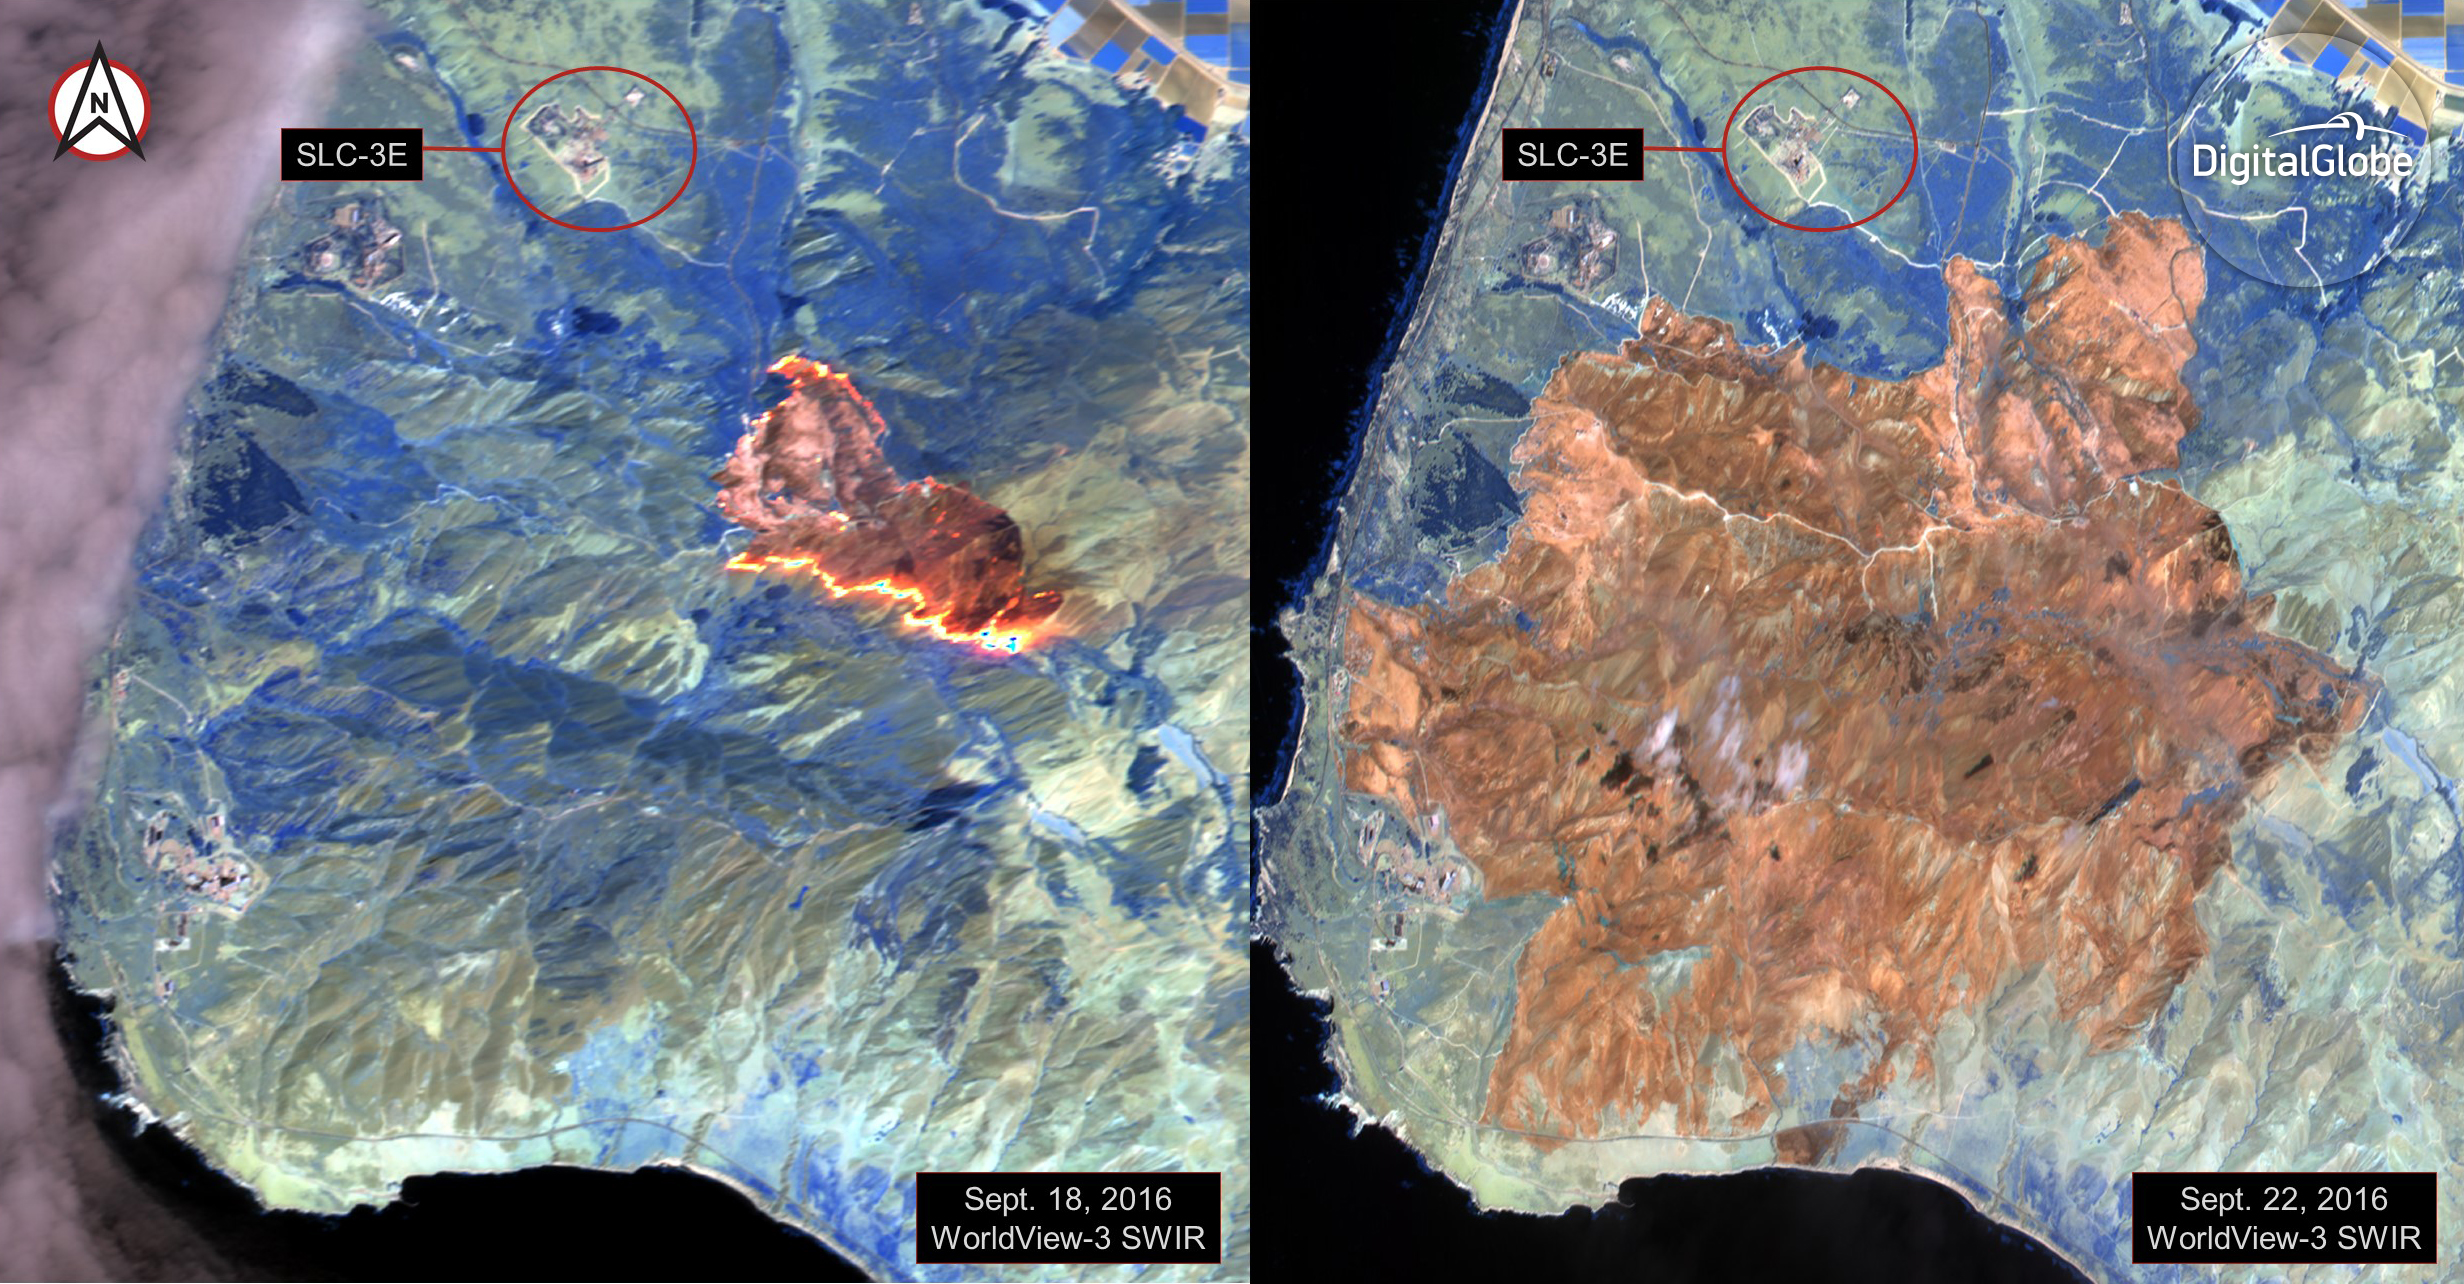 Imagery from Worldview 3 used to fight fires threatening Worldview 4 launch